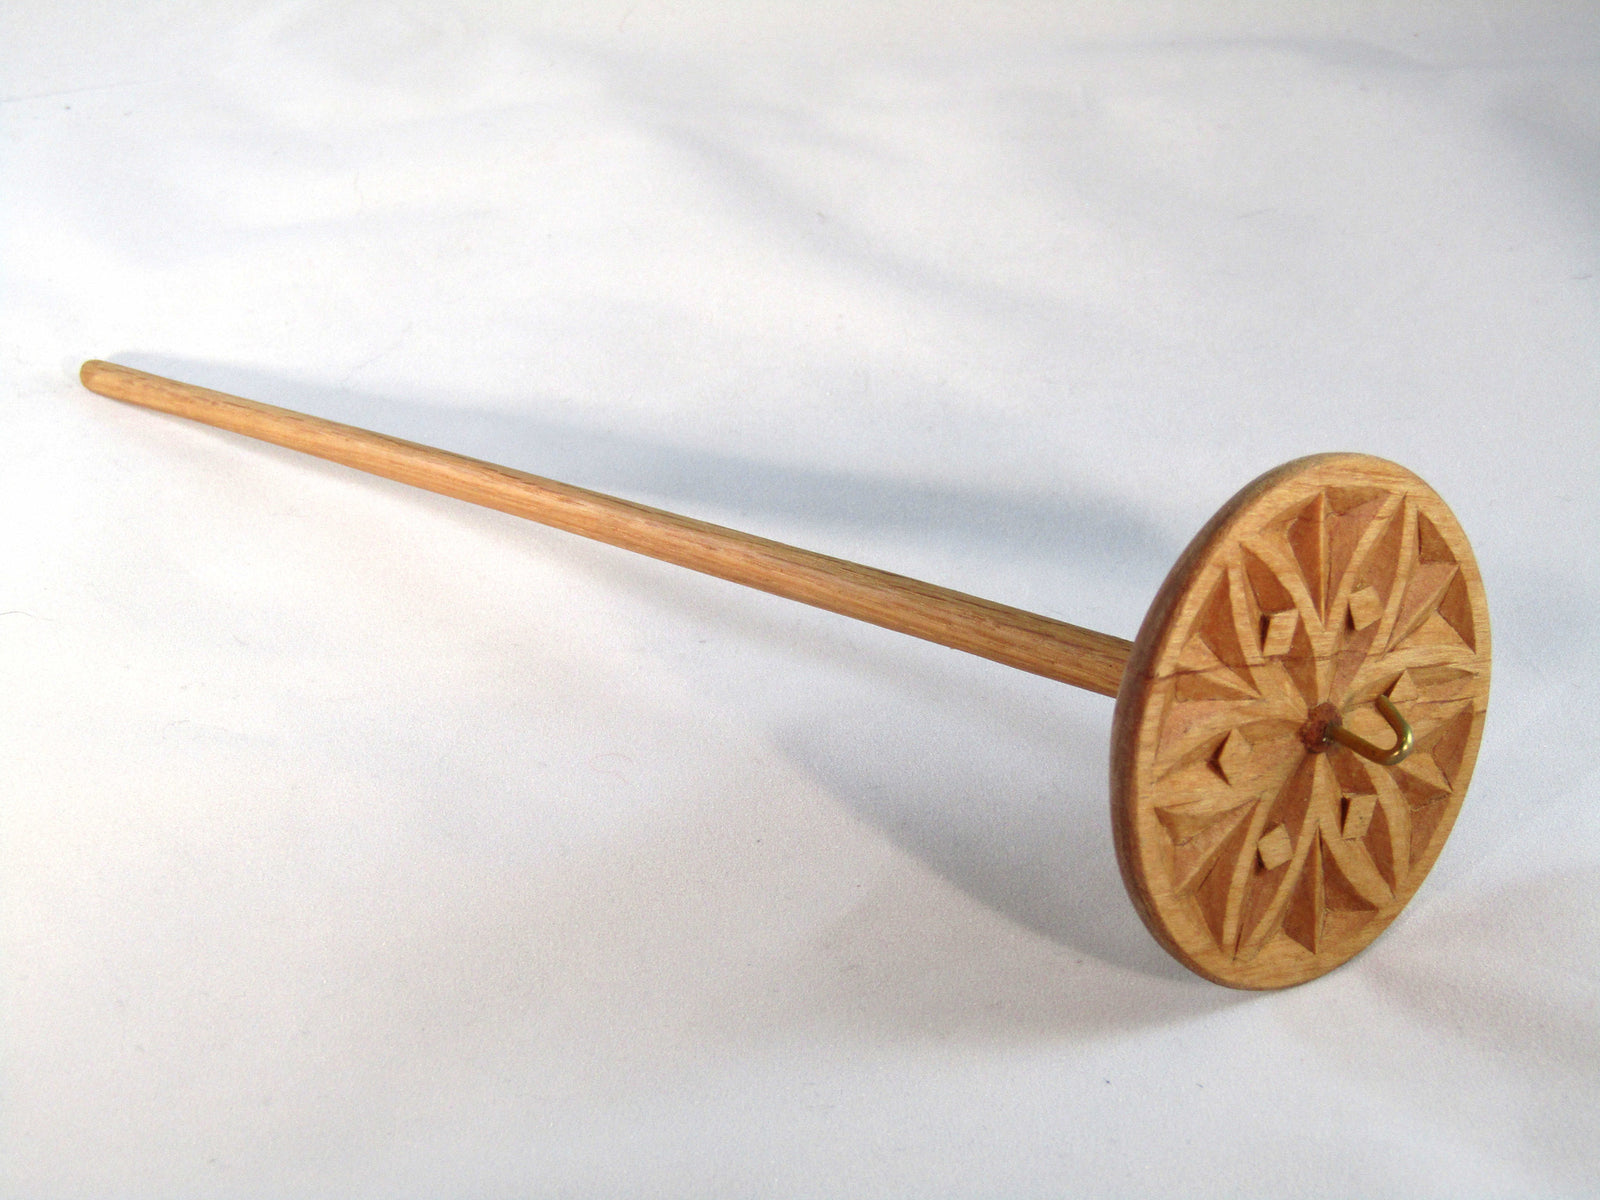 Top Whorl Drop Spindles by Allen Berry - Chip Carved